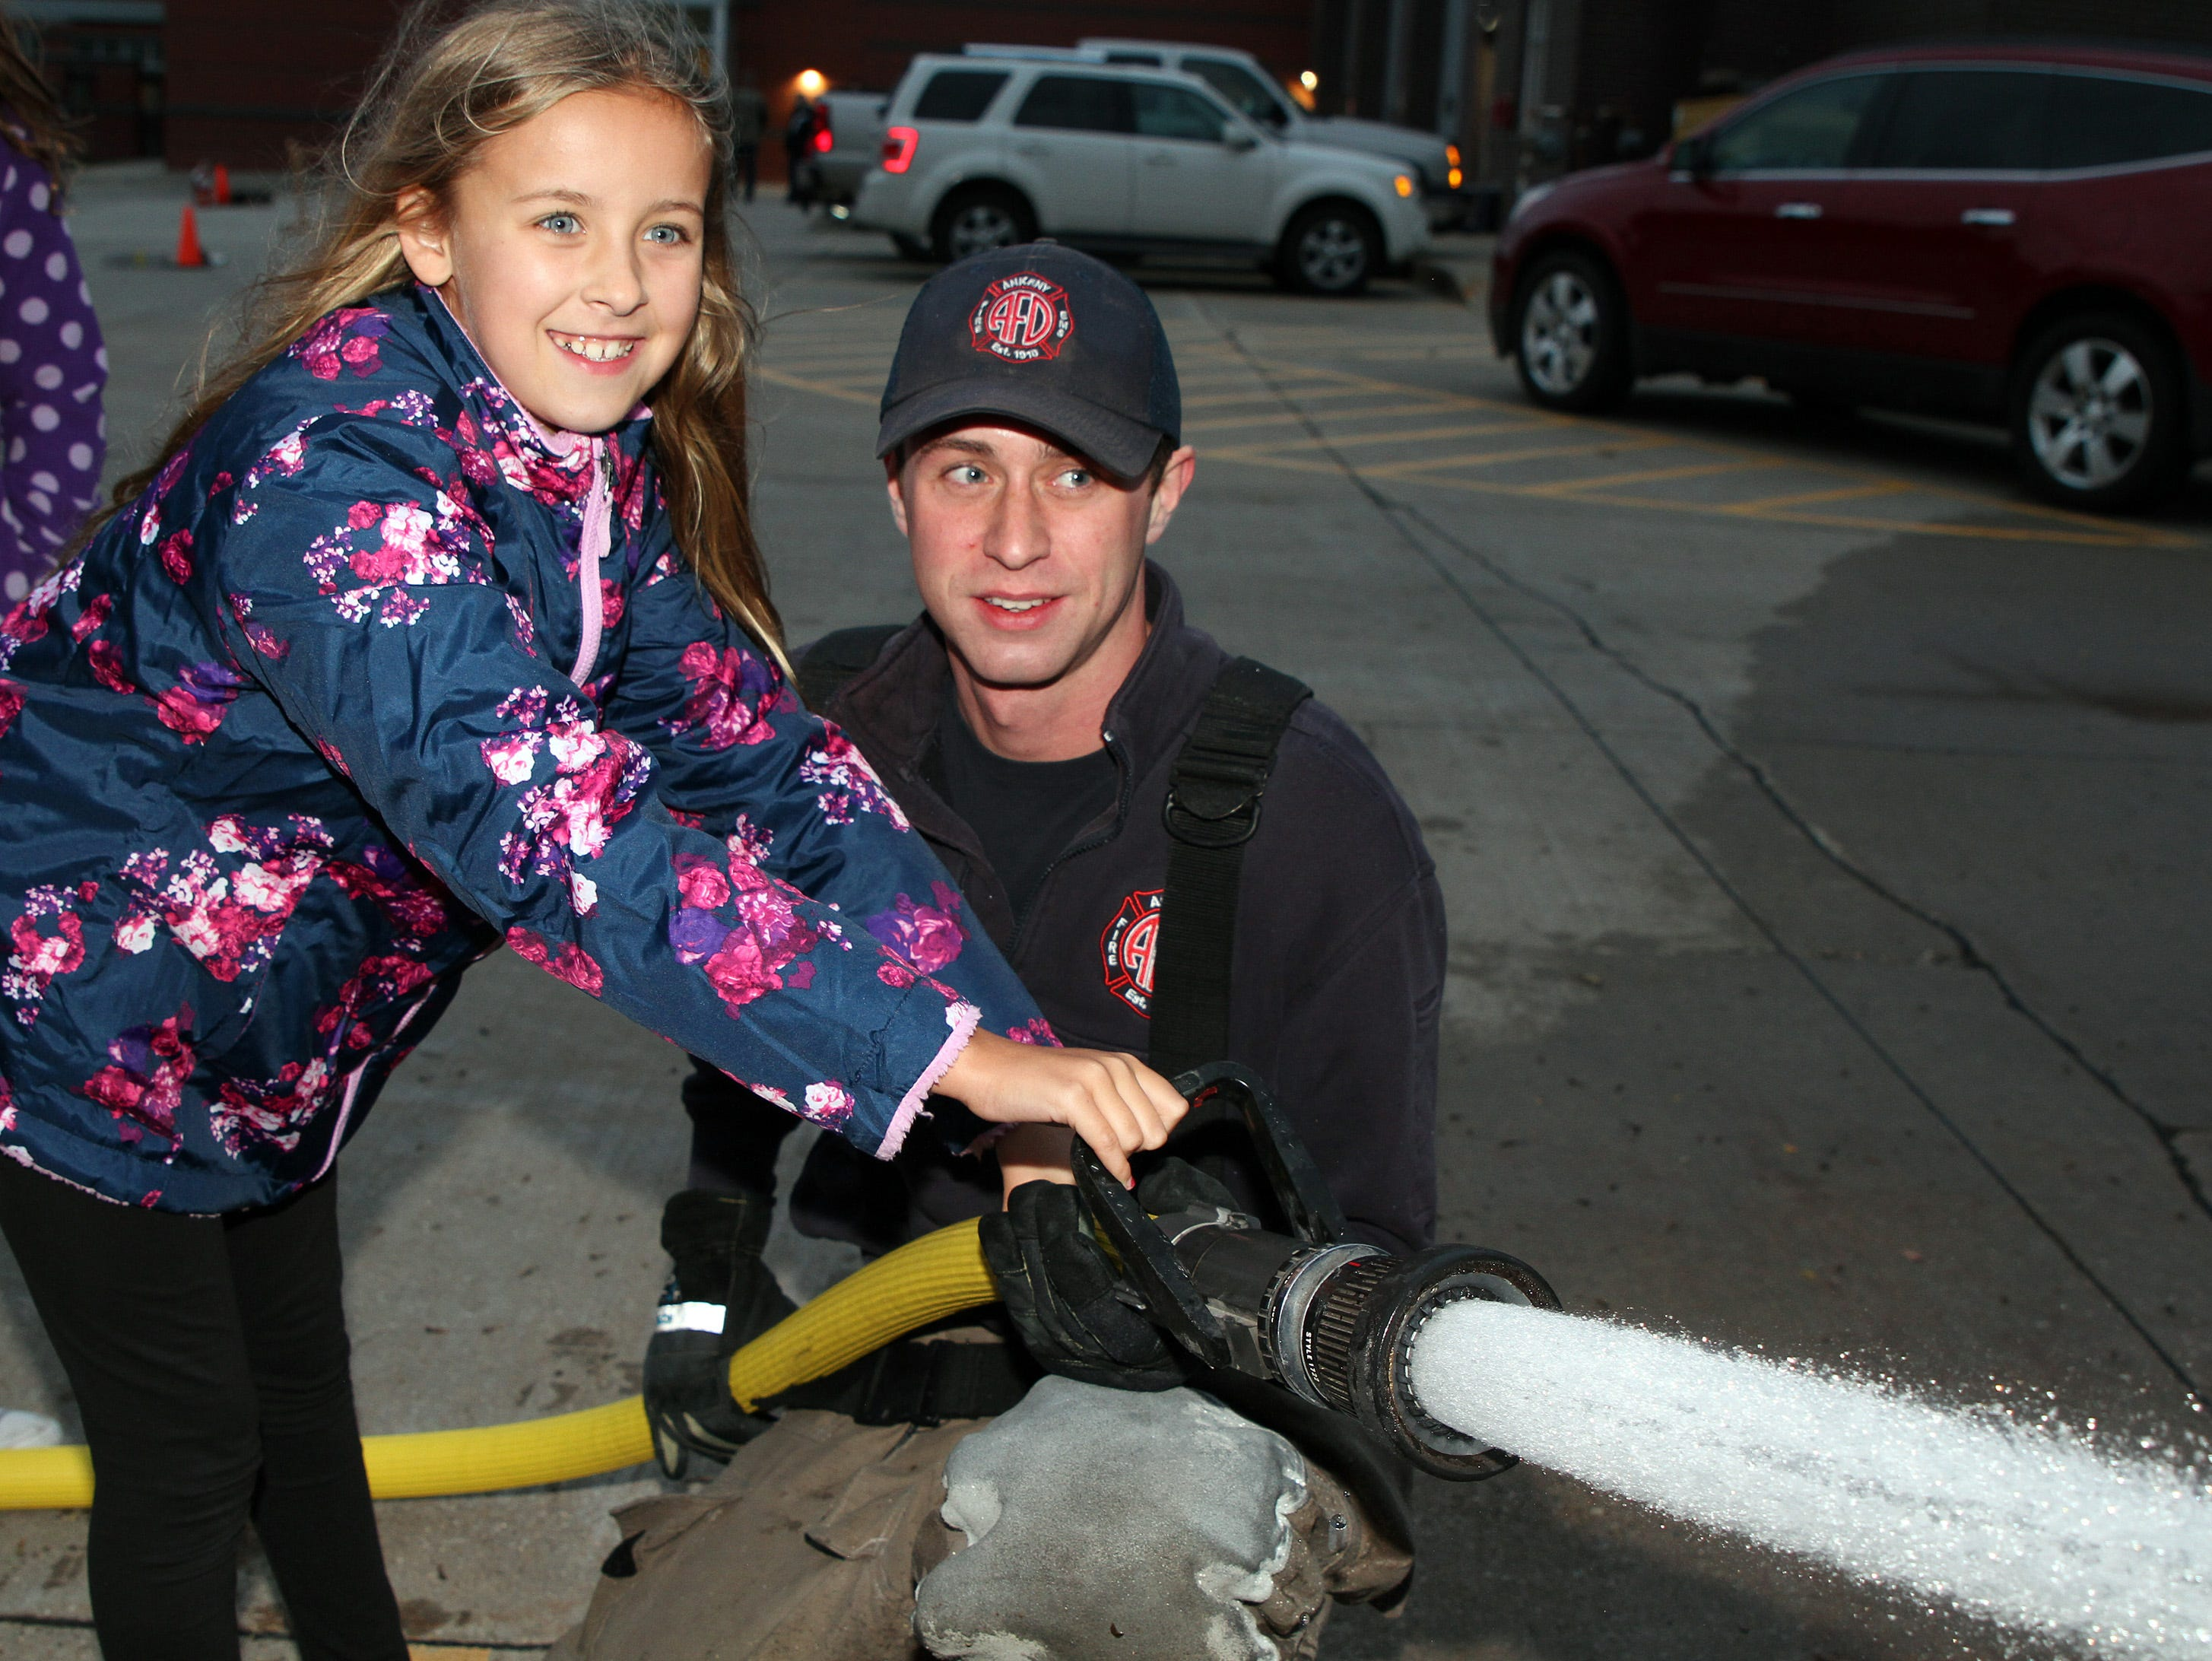 Madi Bachman, 10, learns how to spray water on the target from Ankeny Firefighter Cole White during the Ankeny Fire Department's Fire Prevention Week Open House on Wednesday,  Oct. 10, 2018 at Fire Station #1, 120 N.W. Ash Dr in Ankeny.